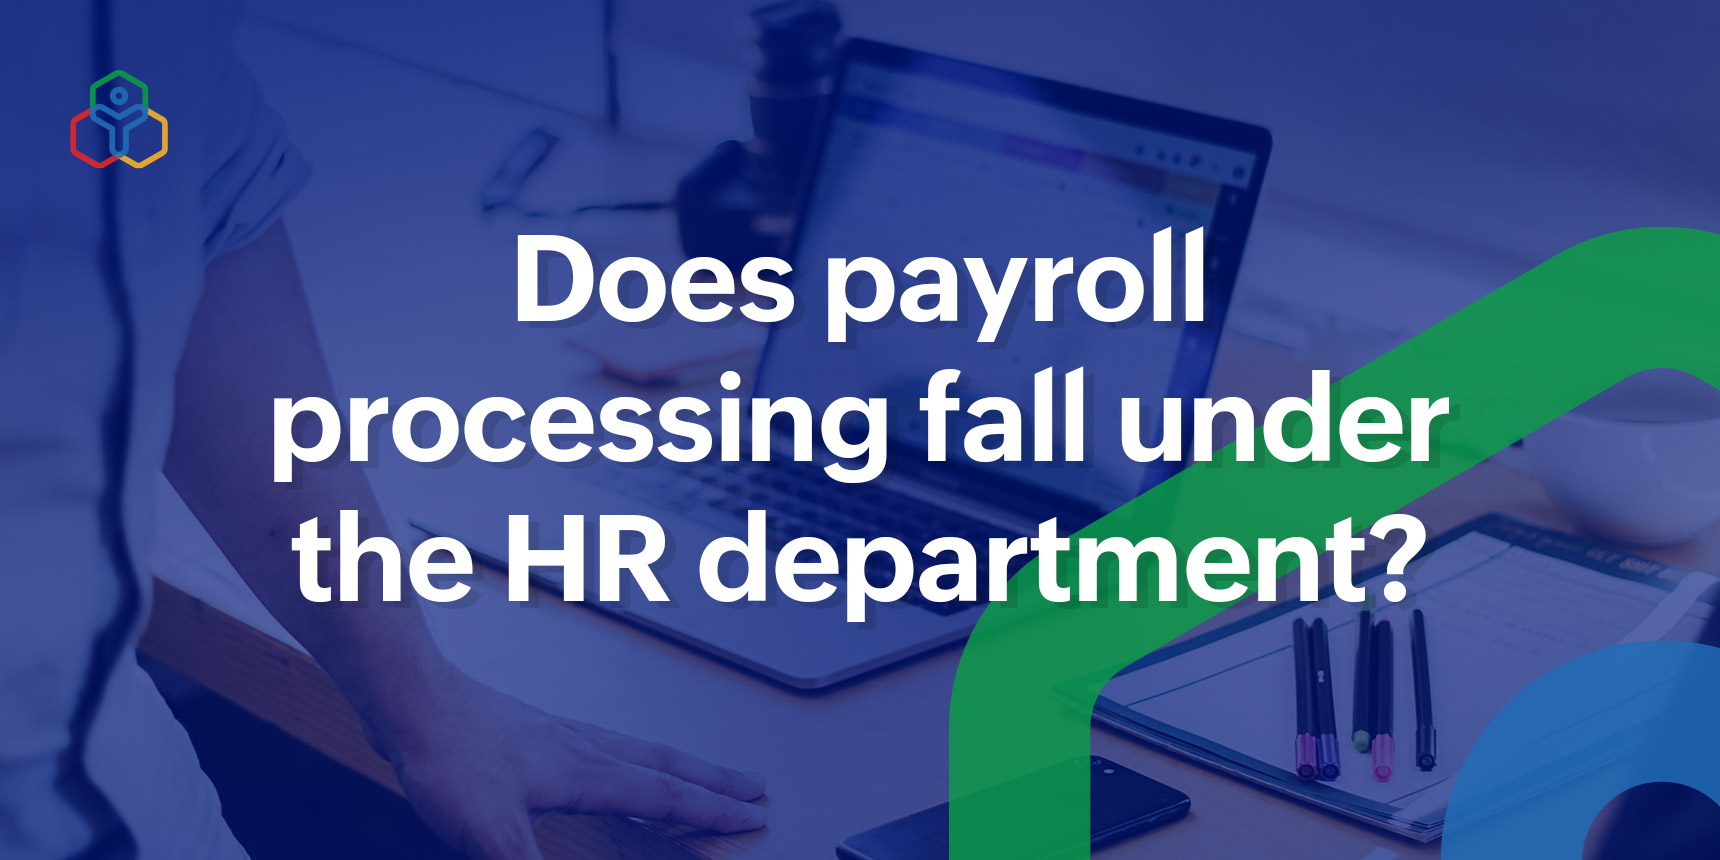 Does payroll processing fall under the HR department?